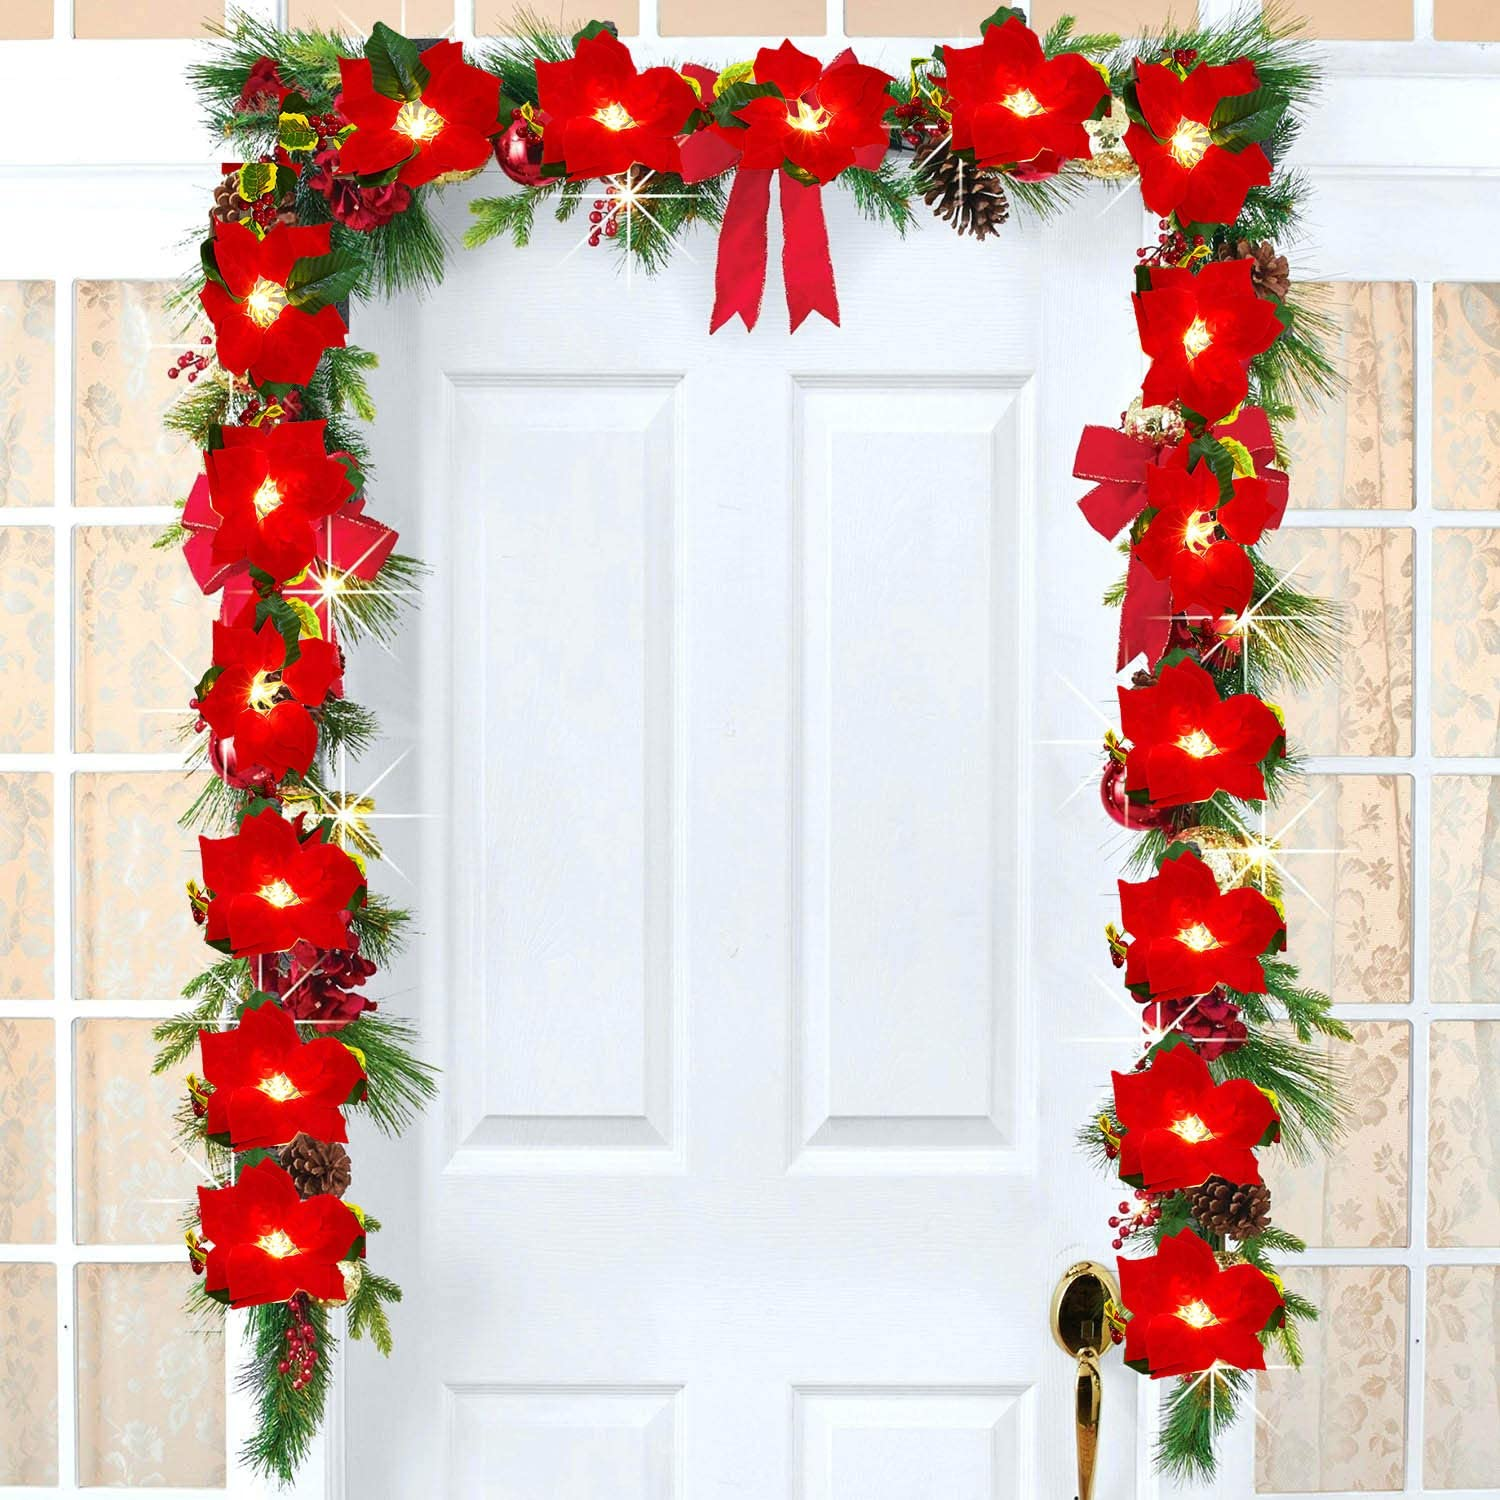 DearHouse 6.5Ft Lighted Poinsettia Christmas Garland with Red Berries and Holly Leaves, Pre-Lit Velvet Artificial Poinsettia Garland for Christmas Decoration, Battery Operated